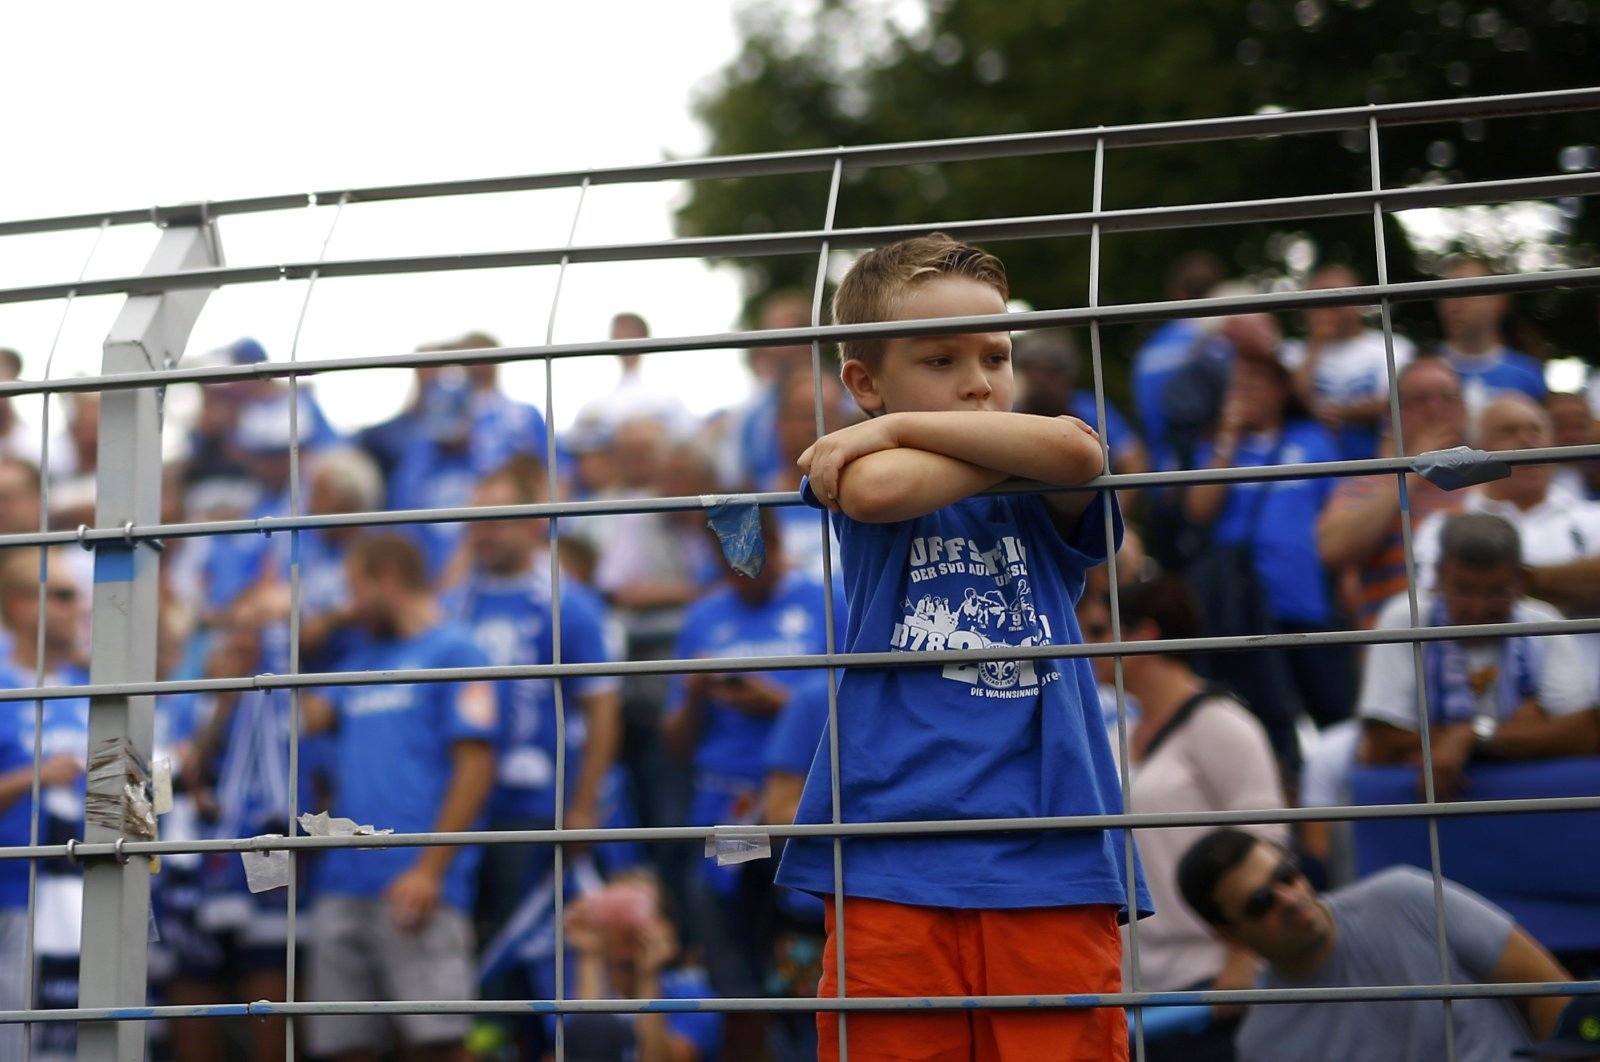 In this Aug. 15, 2015, file photo, a child attends the soccer match between SV Darmstadt 98 and Hanover 96 before their German first division Bundesliga soccer match in Darmstadt, Germany. (Reuters Photo)